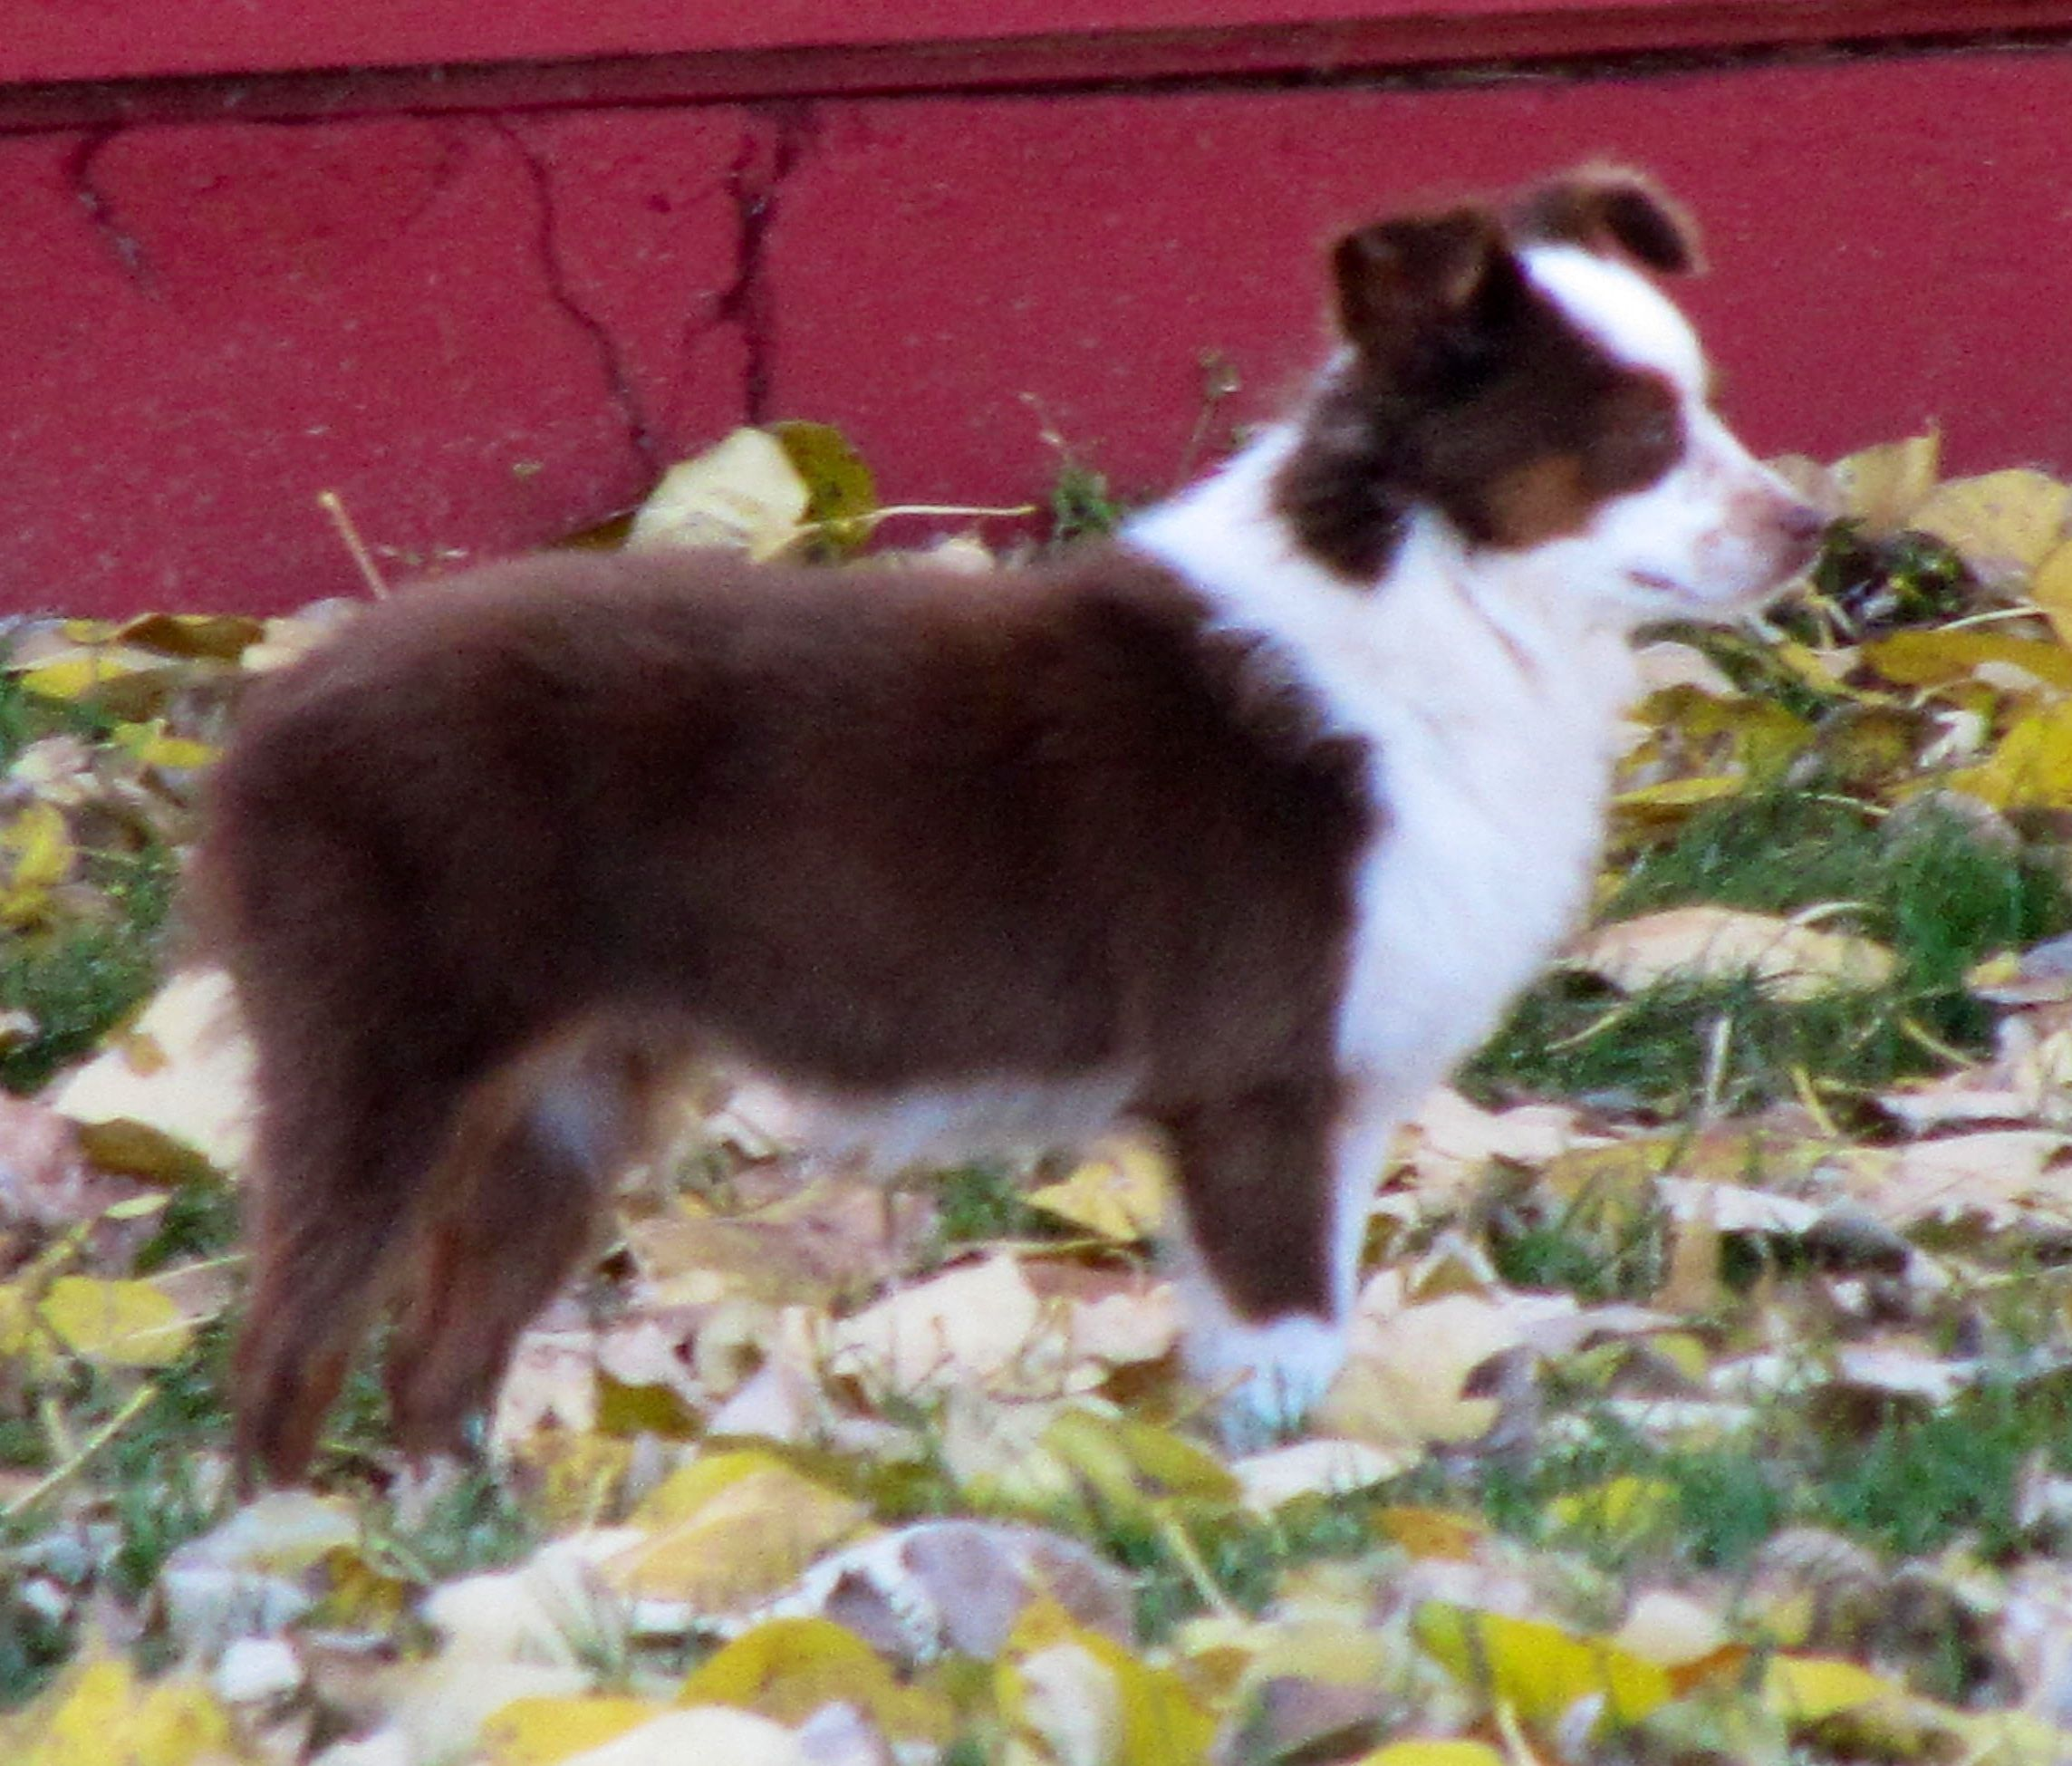 Beartooth Toy Aussies Has Several Puppies And Adults For Sale Many Are Championed Blue Eyed Tris And All Wit Toy Australian Shepherd Dogs And Puppies Aussie